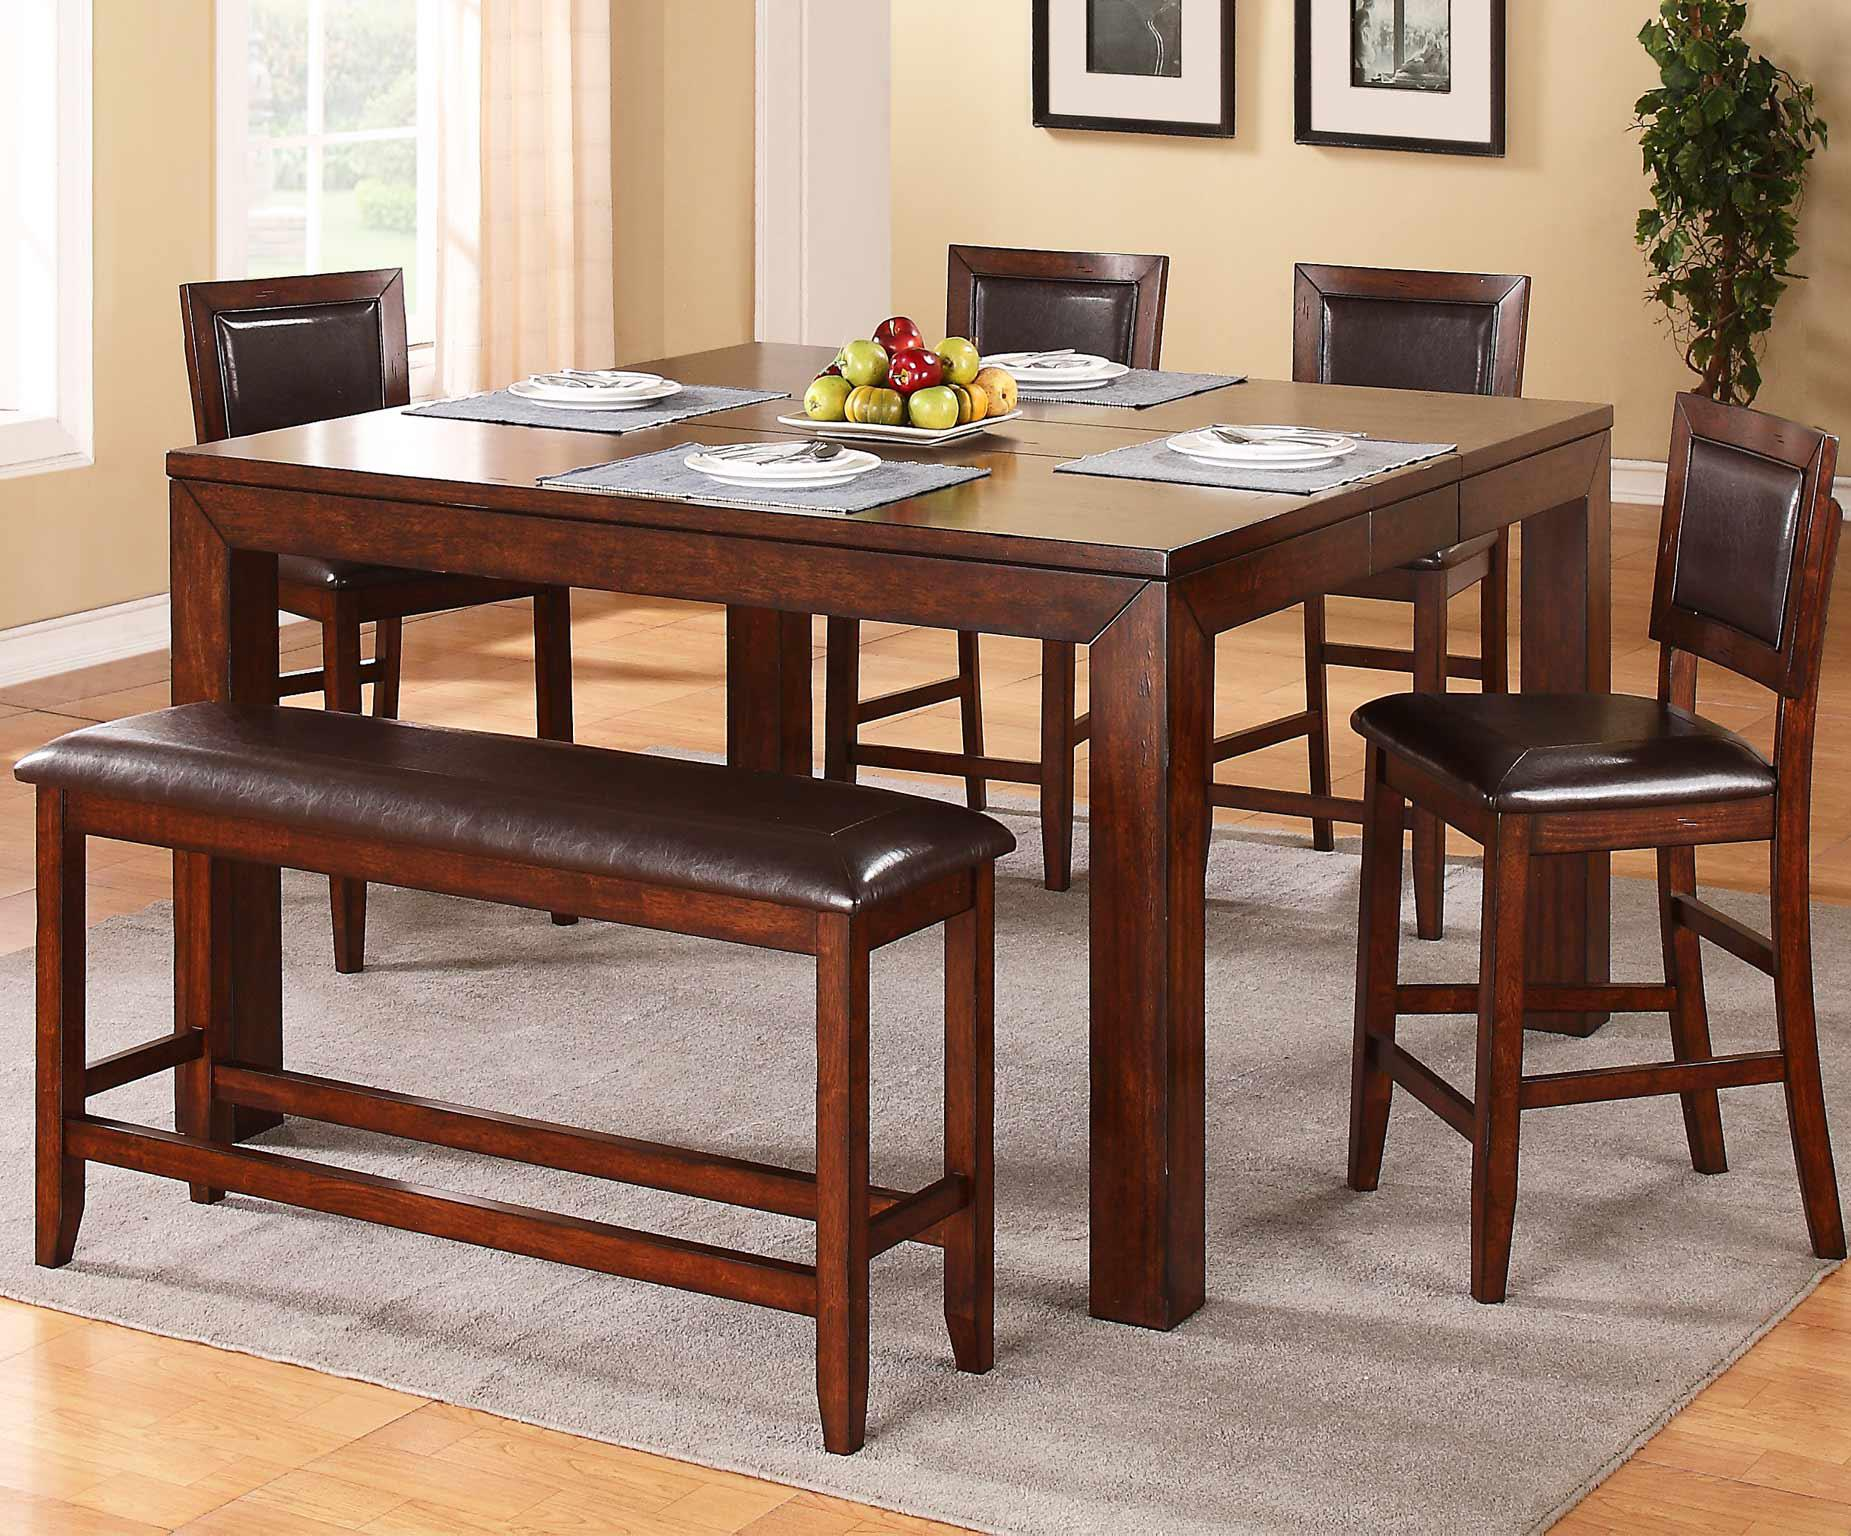 winners only fallbrook 6 piece counter height dining set with bench fashion furniture pub. Black Bedroom Furniture Sets. Home Design Ideas